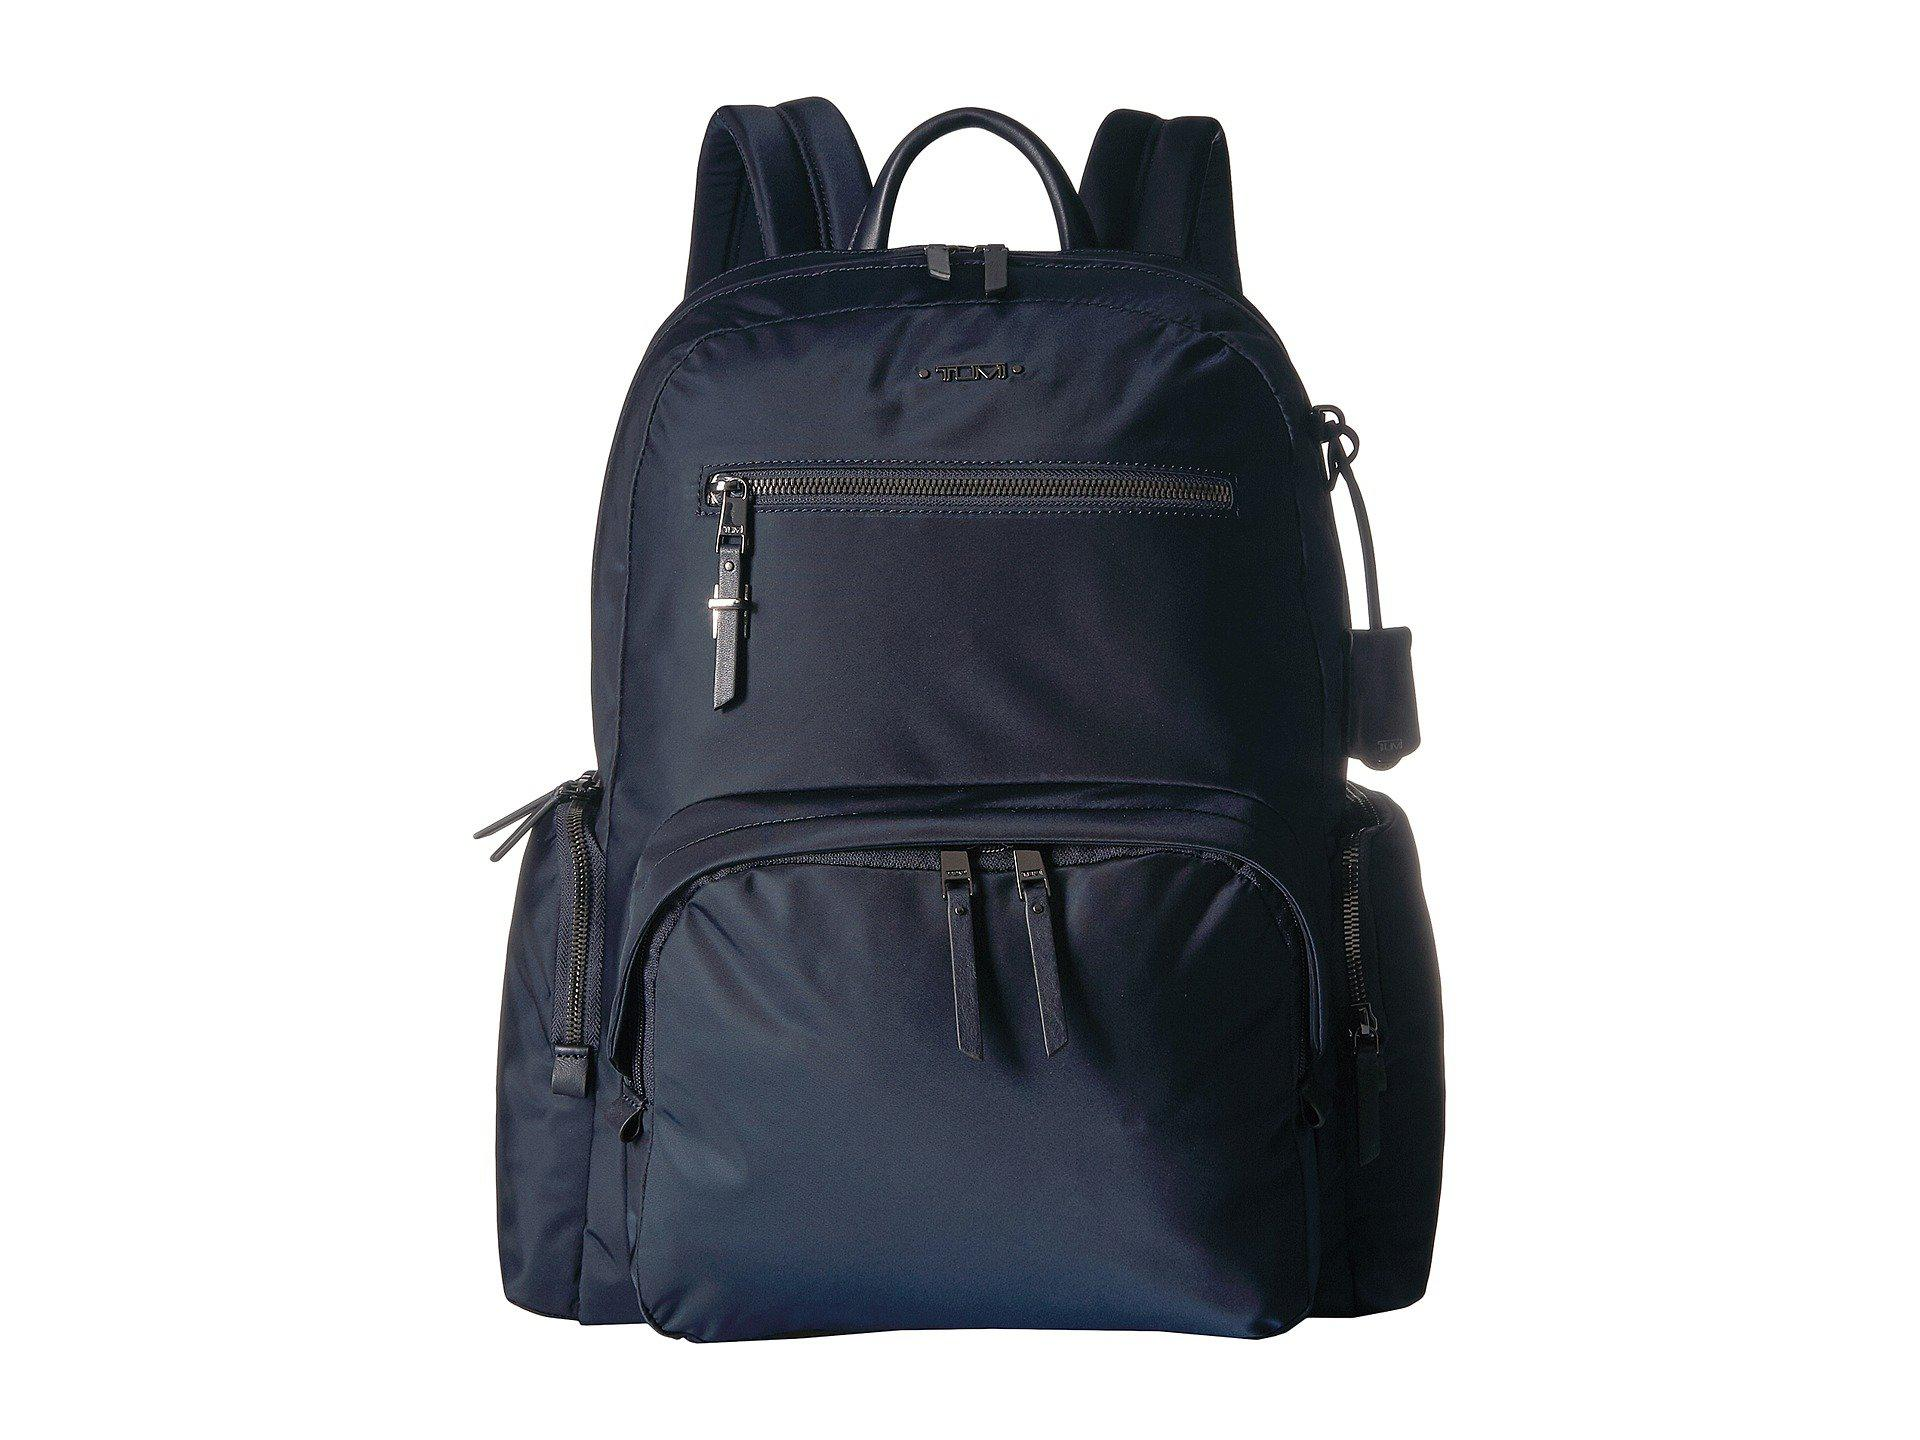 b1dd276c0 Tumi Voyageur Carson Backpack (black/silver) Backpack Bags in Blue ...